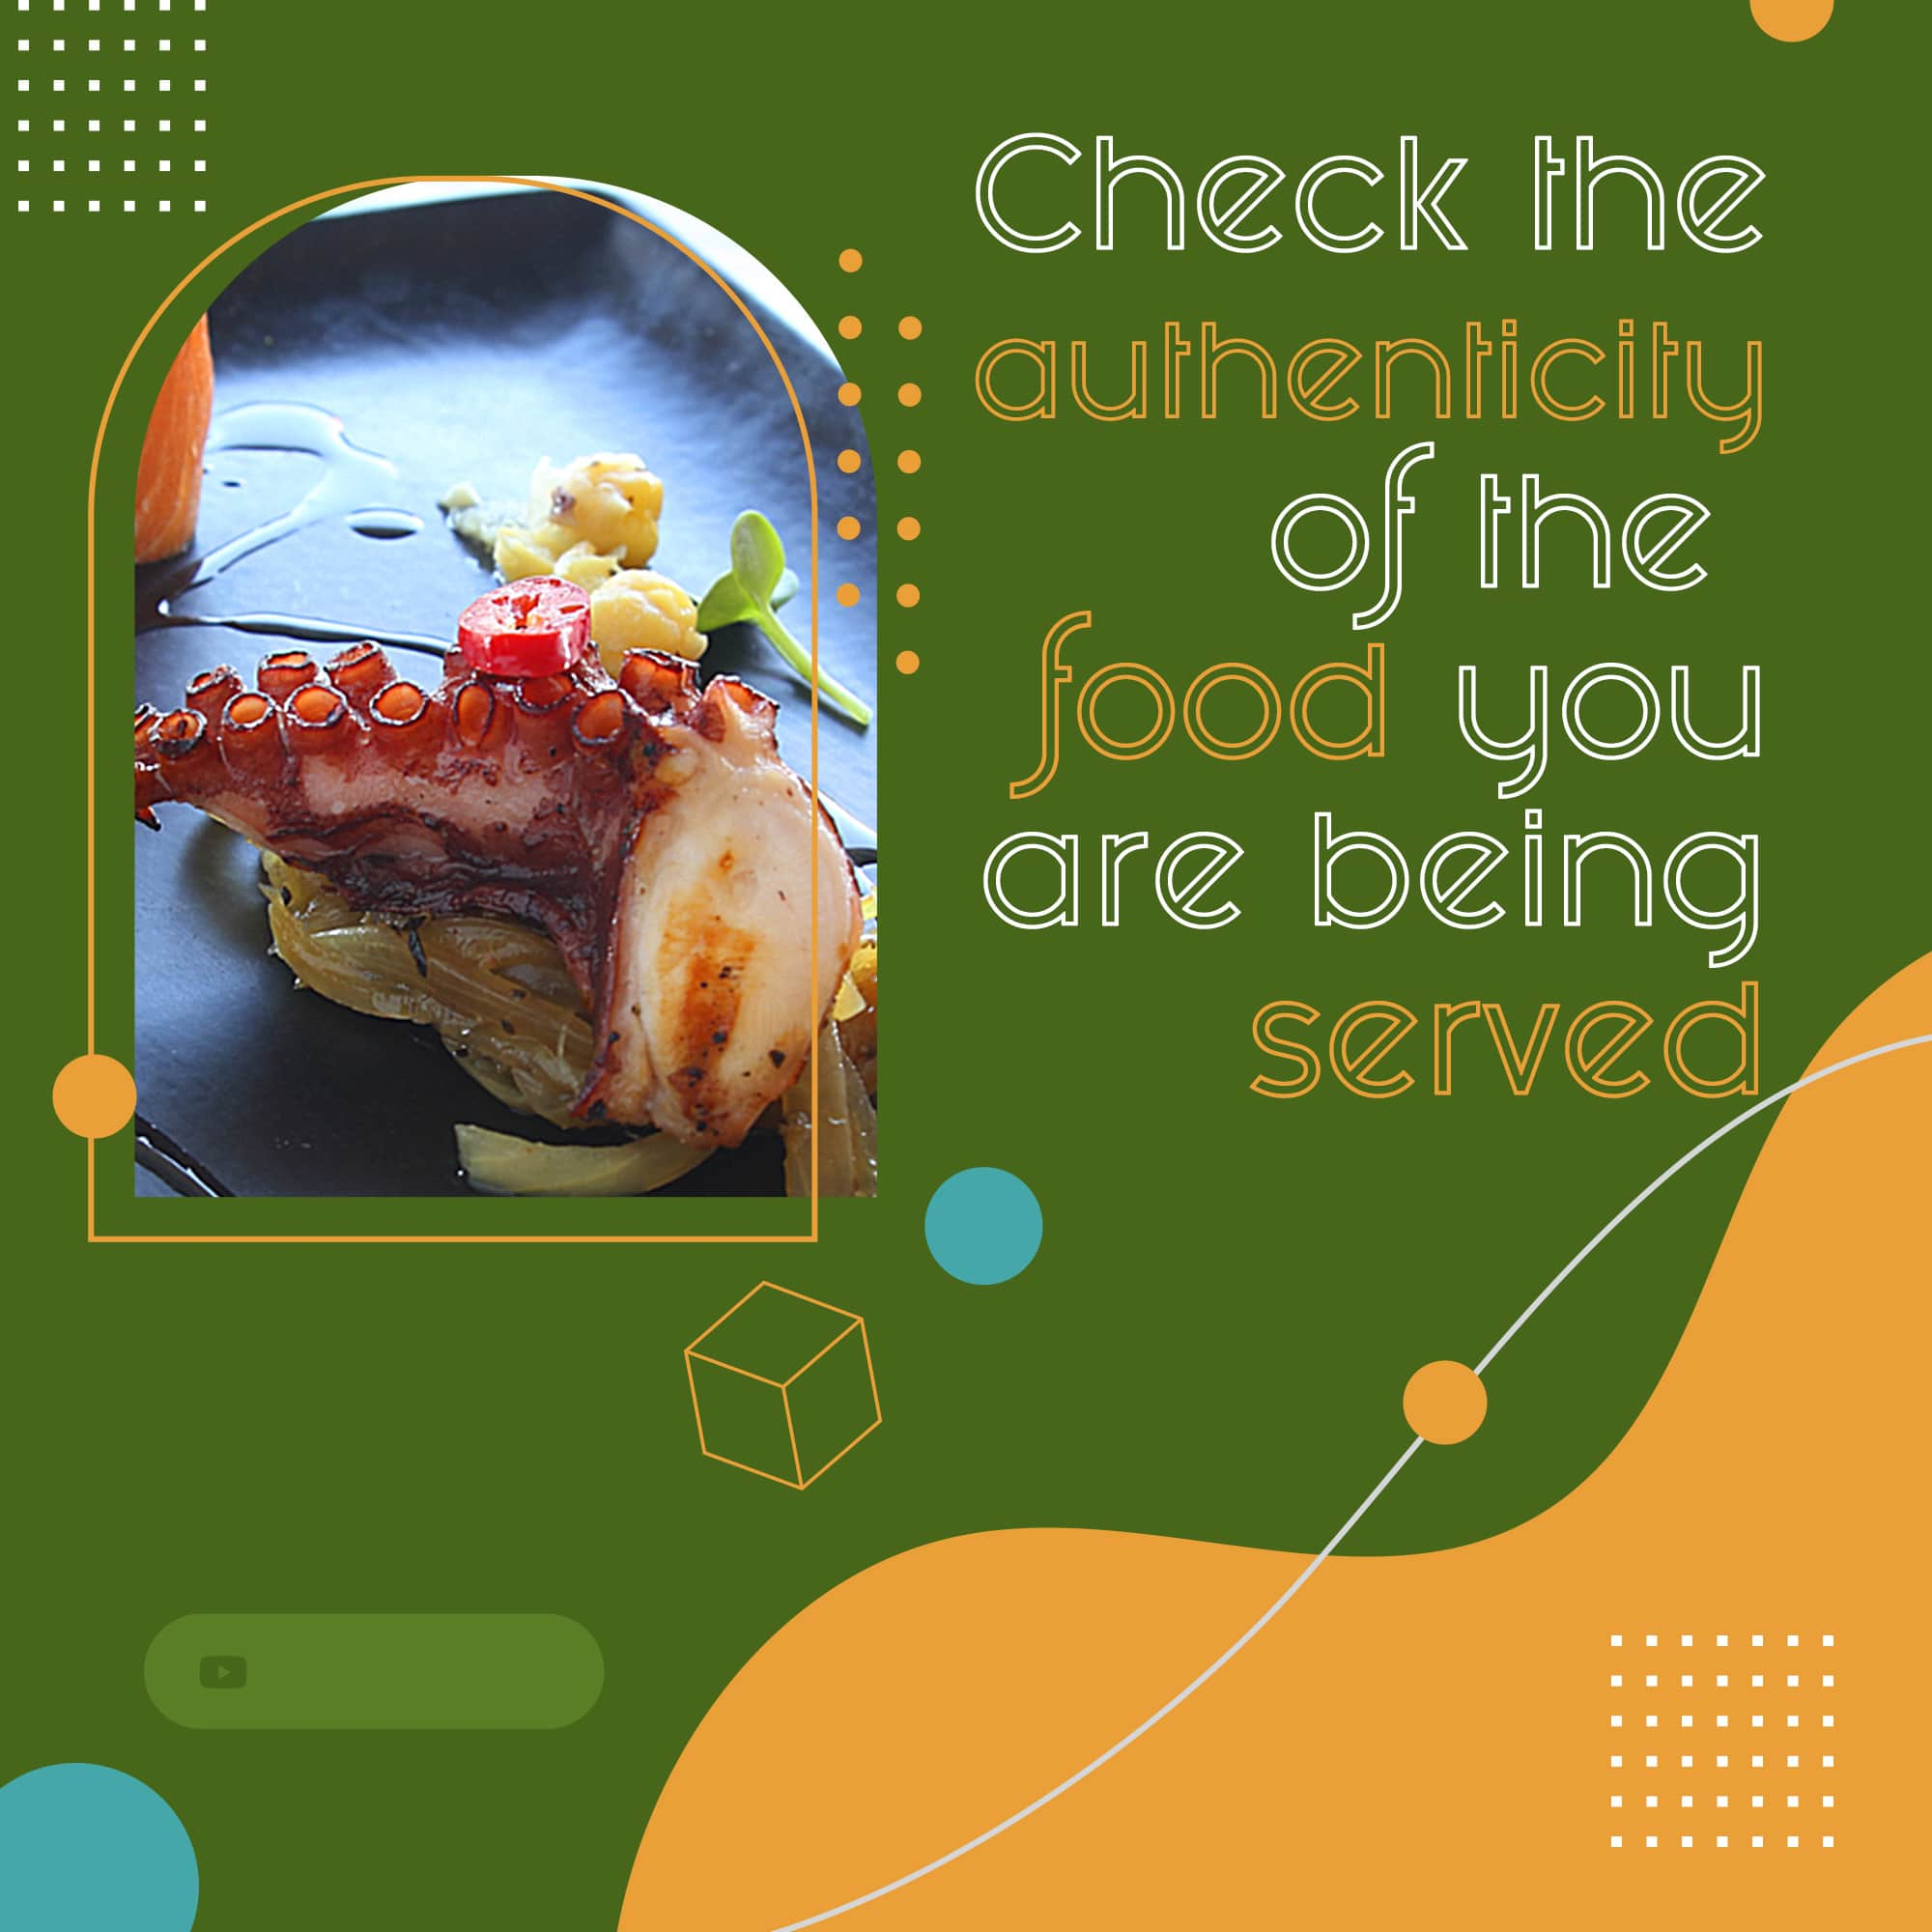 Check the authenticity of the food you are being served